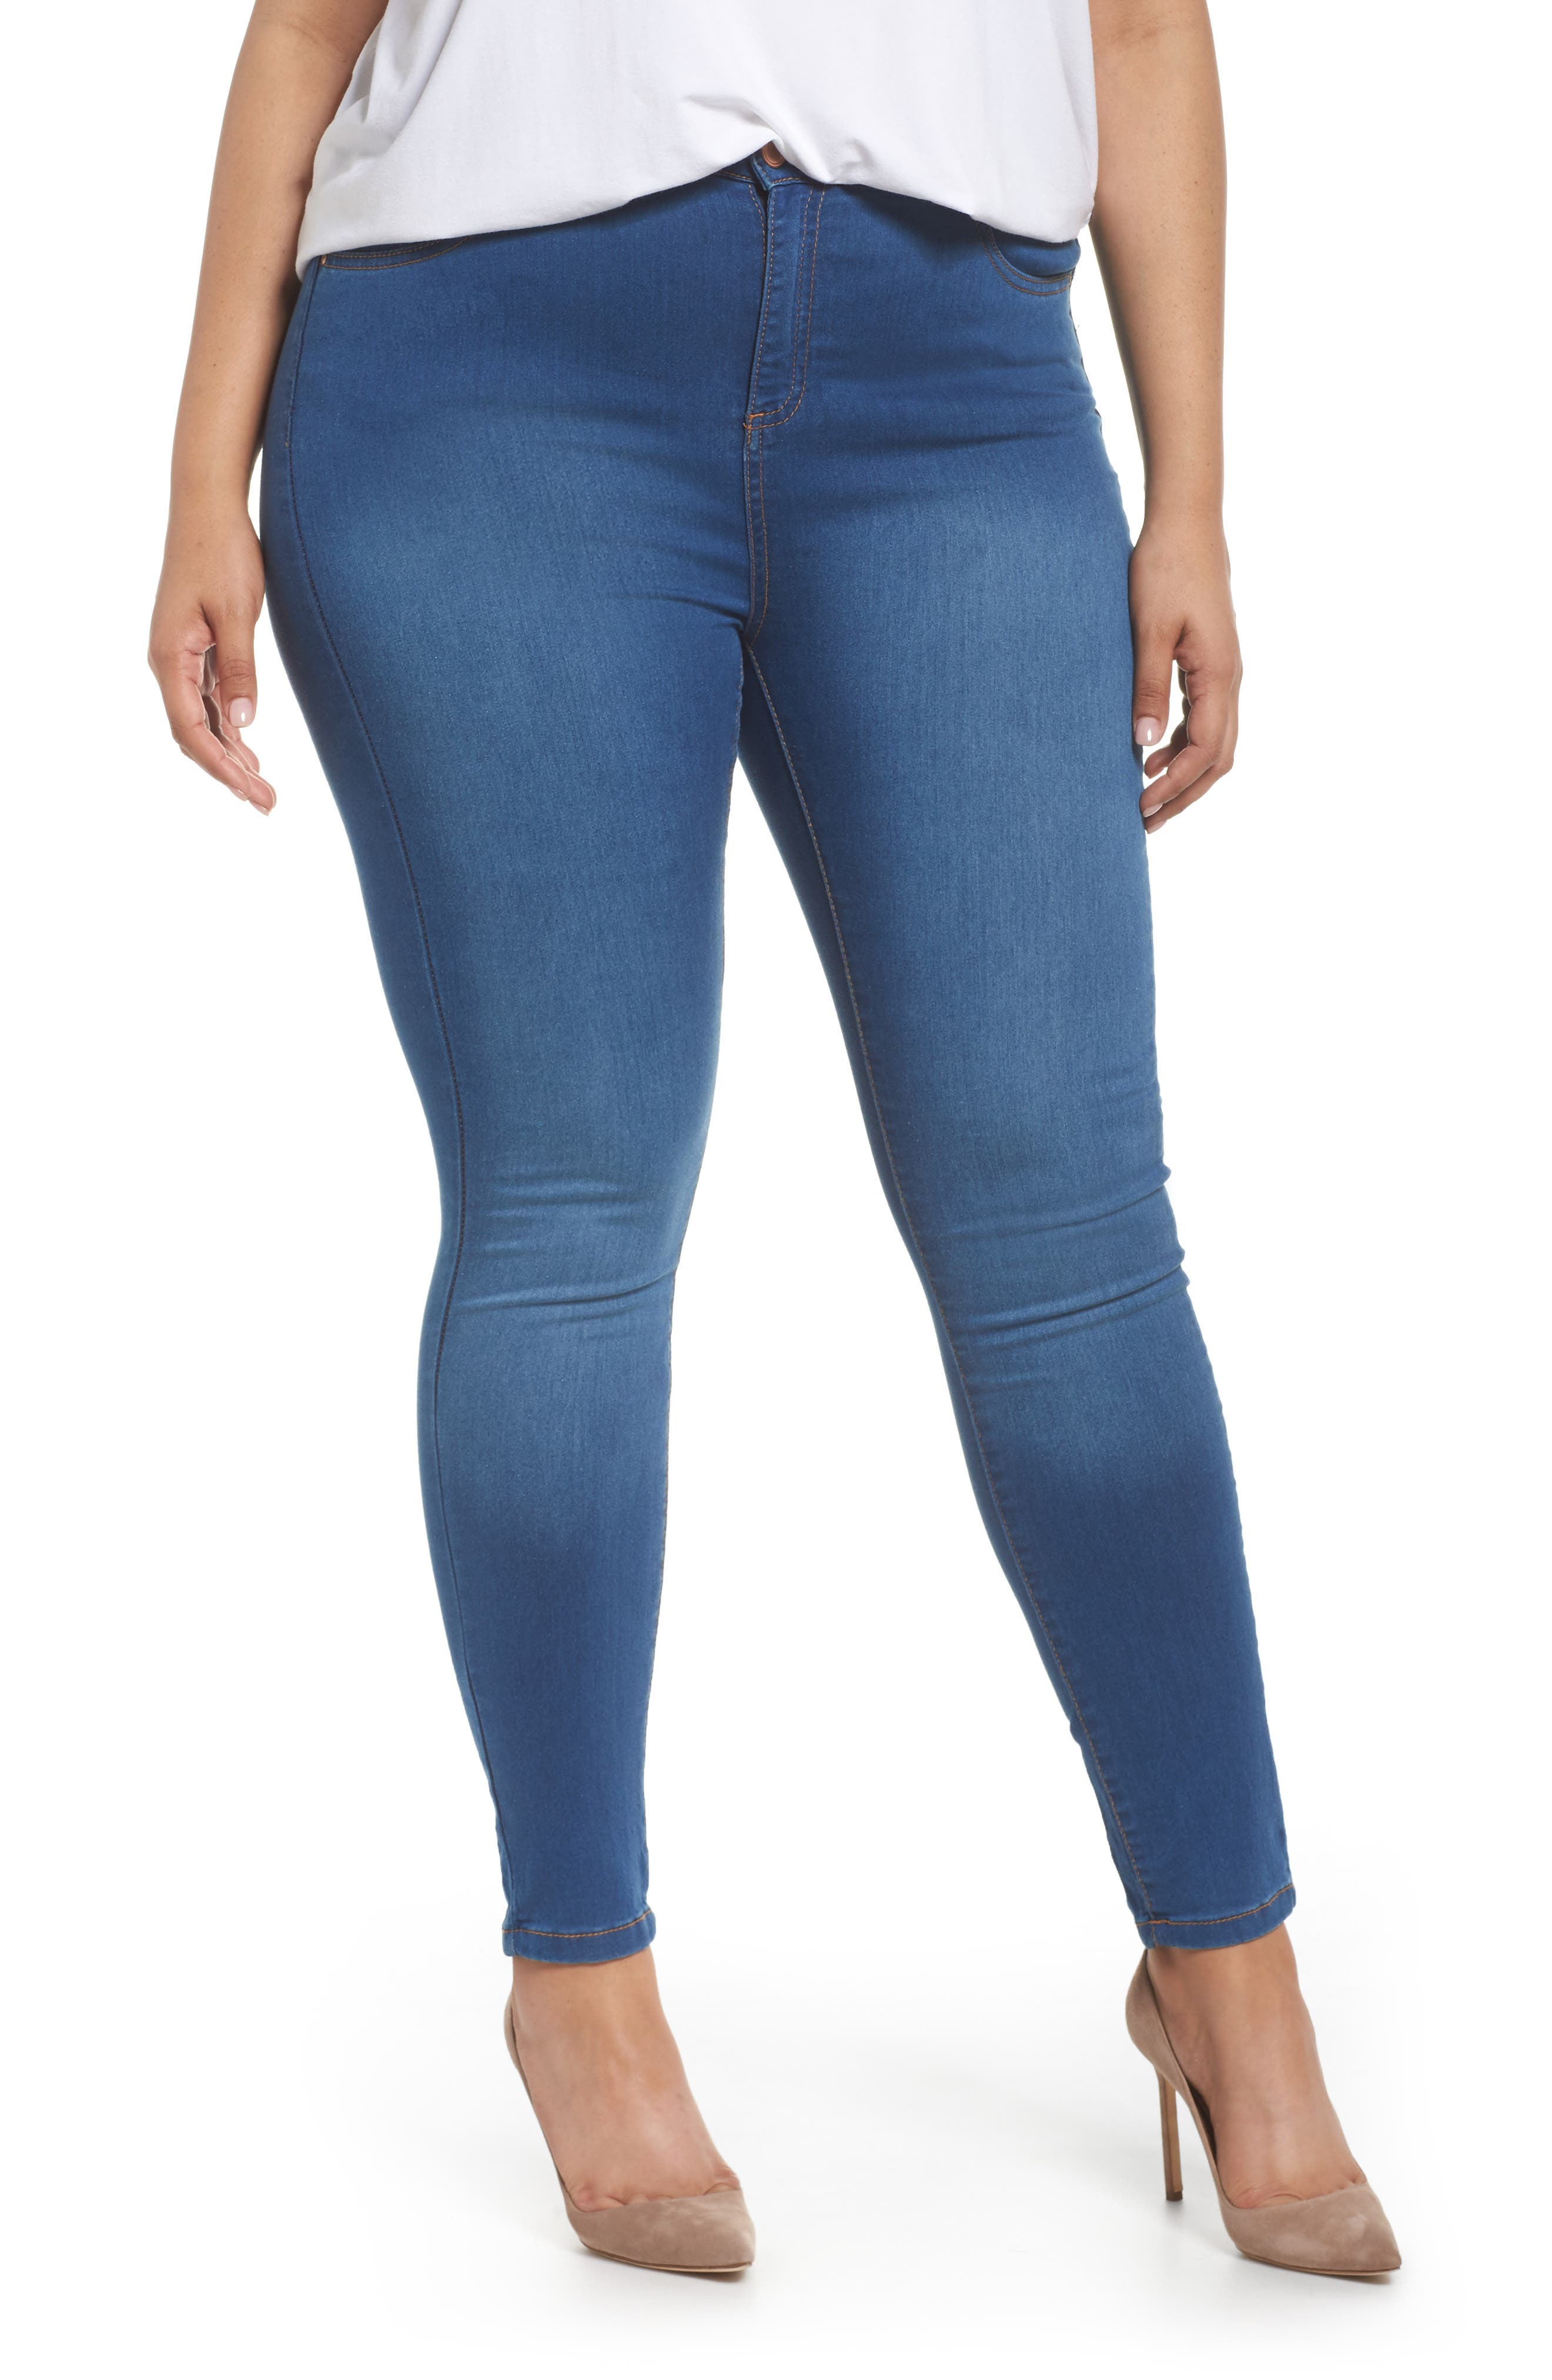 Main Image - Evans Skinny Stretch Jeans (Mid Wash) (Plus Size)